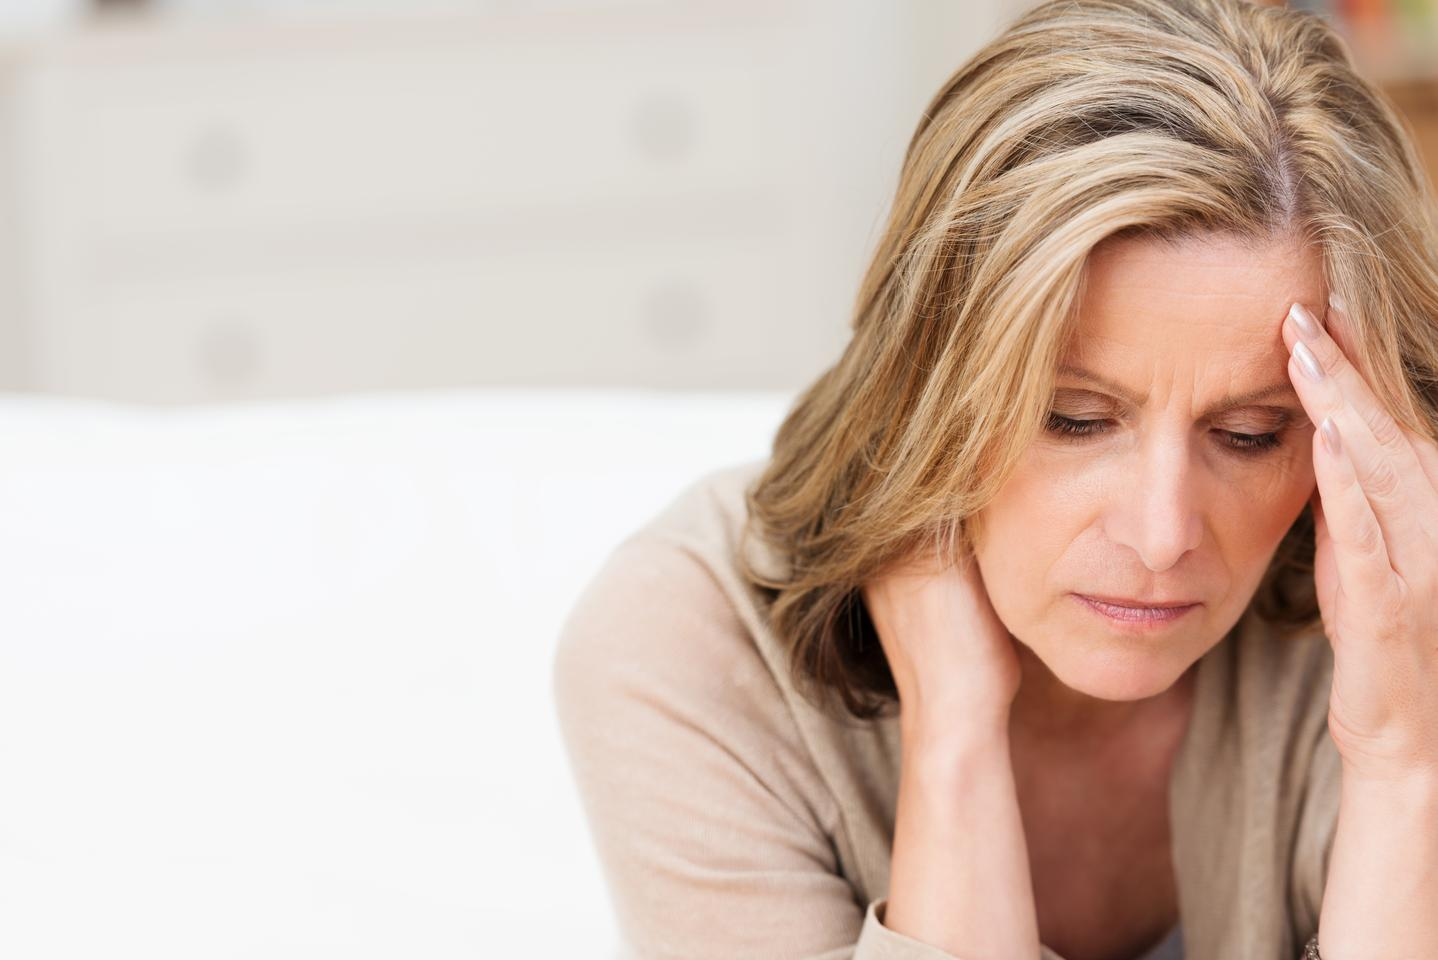 According to the CAMH study, long-term depression might be associated with brain inflammation